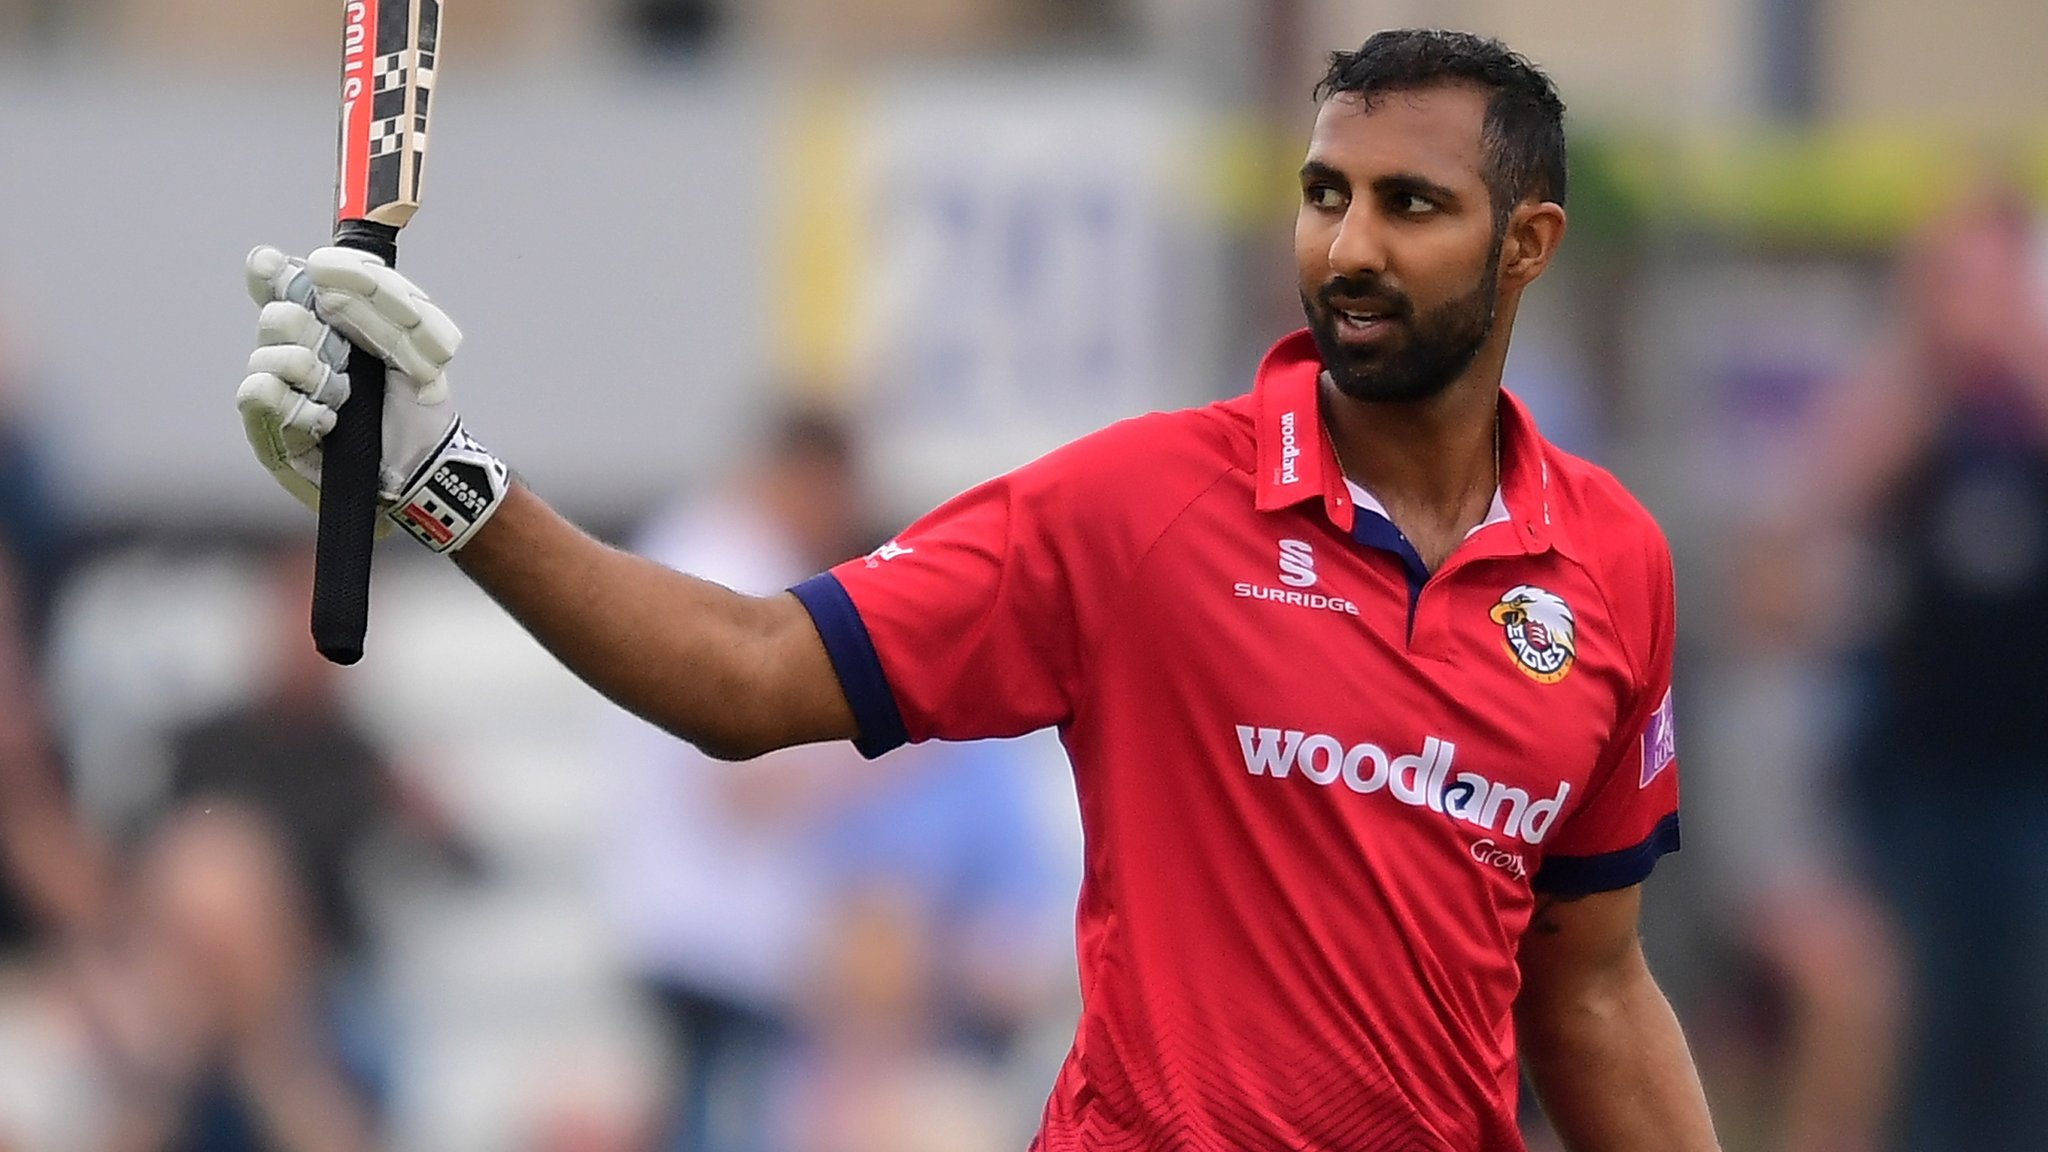 One-Day Cup: Varun Chopra's century helps Essex beat Somerset for second victory